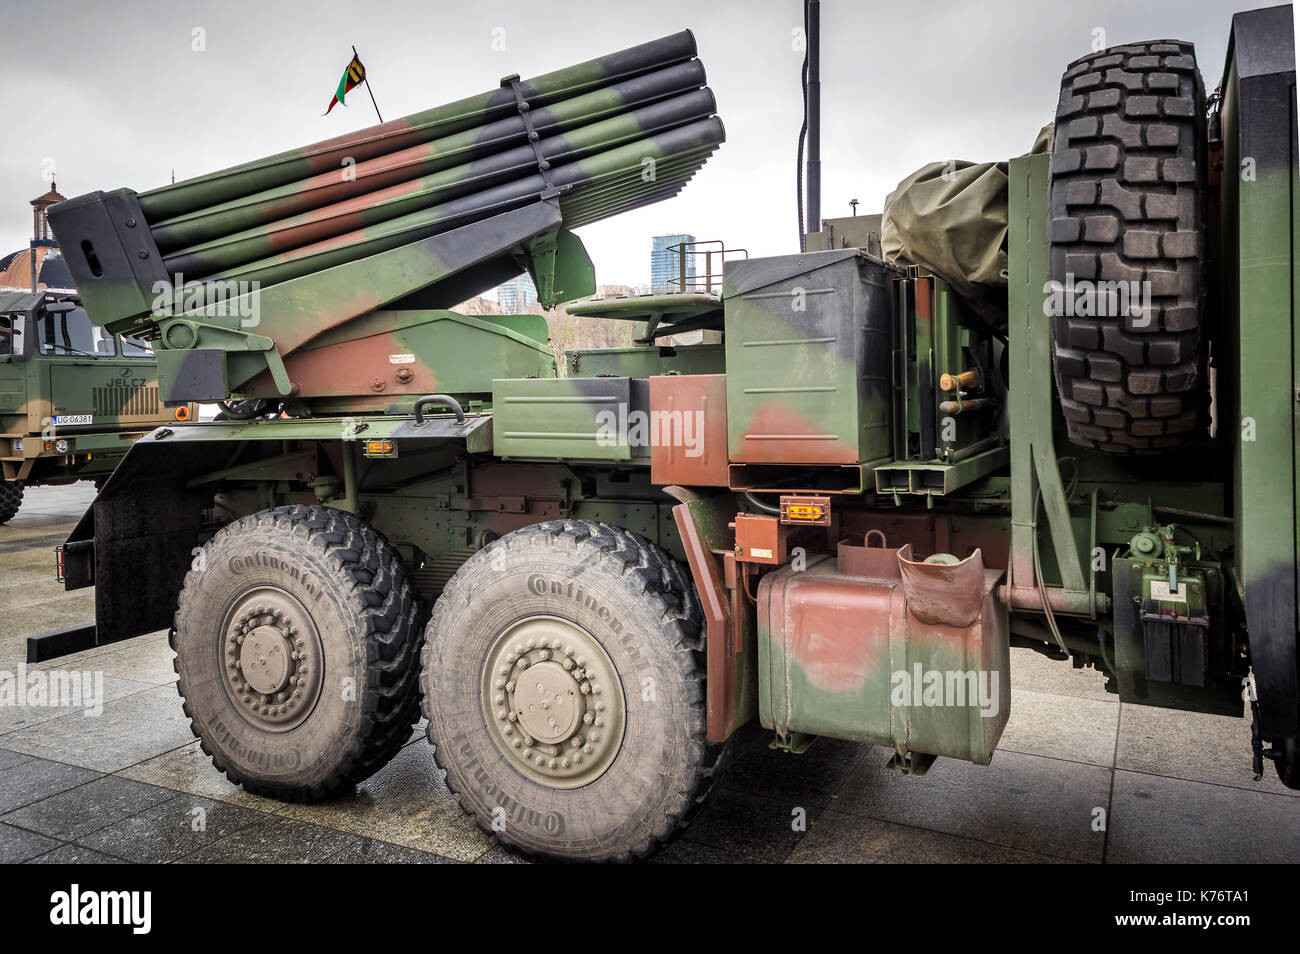 Modern Polish self-propelled WR-40 Langusta multiple launch rocket system used by the Armed Forces of the Republic of Poland - Warsaw, Poland. - Stock Image